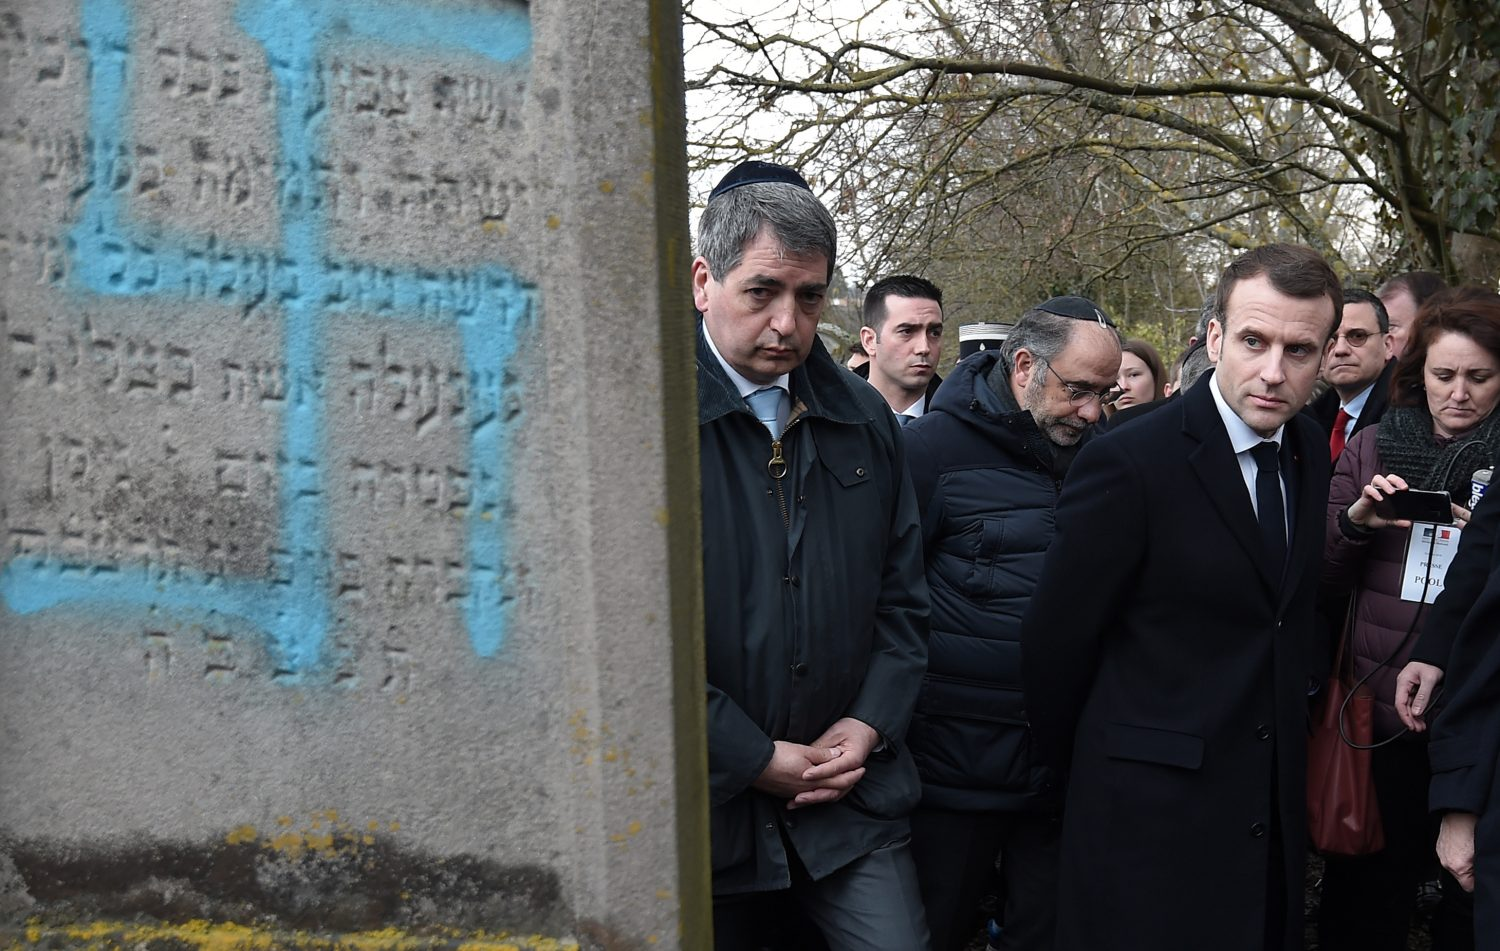 French President Emmanuel Macron looks at a grave vandalised with a swastika during a visit at the Jewish cemetery in Quatzenheim, France February 19, 2019. Frederick Florin/Pool via REUTERS